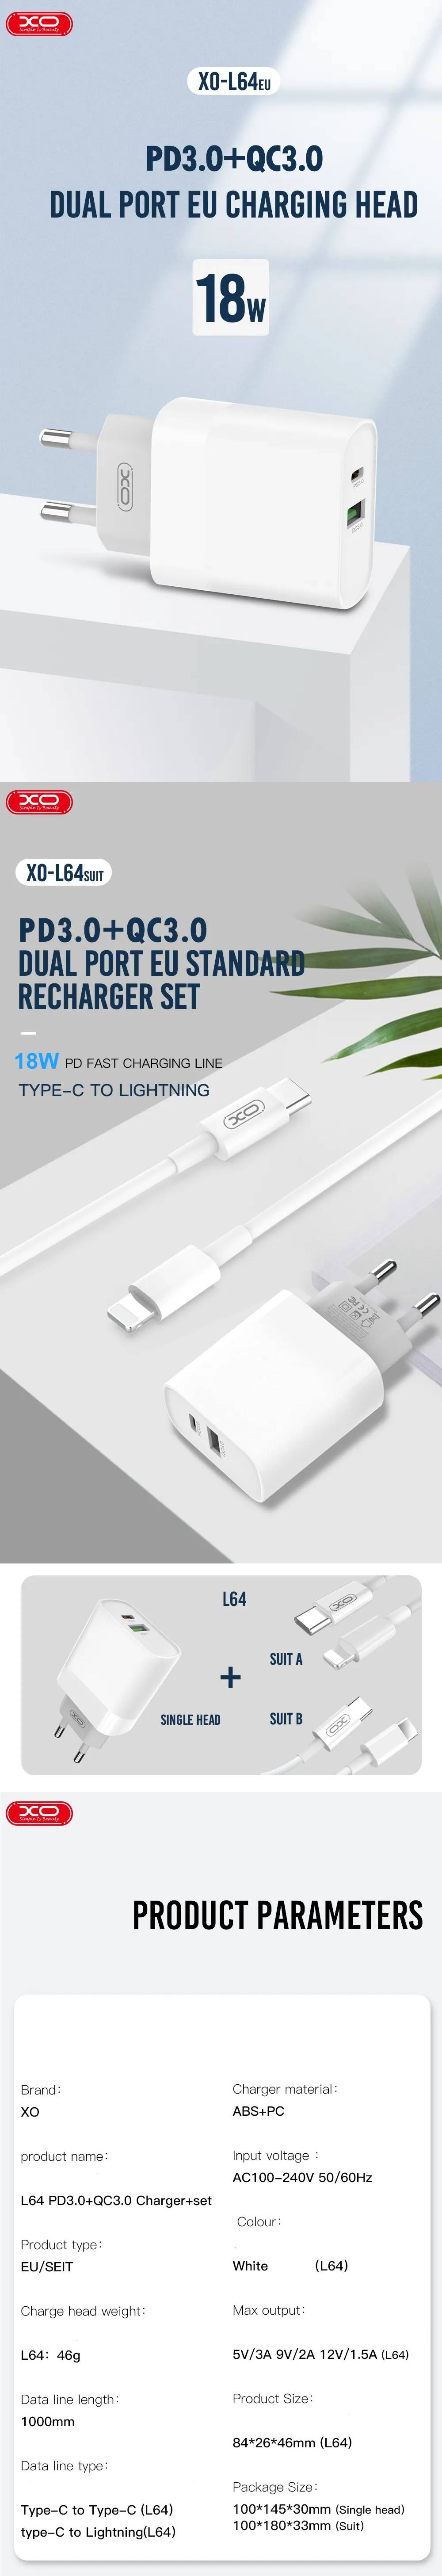 XO Wall charger L64 plus cable type-C - 8-pin white 2USB QC3.0/ PD USB-C